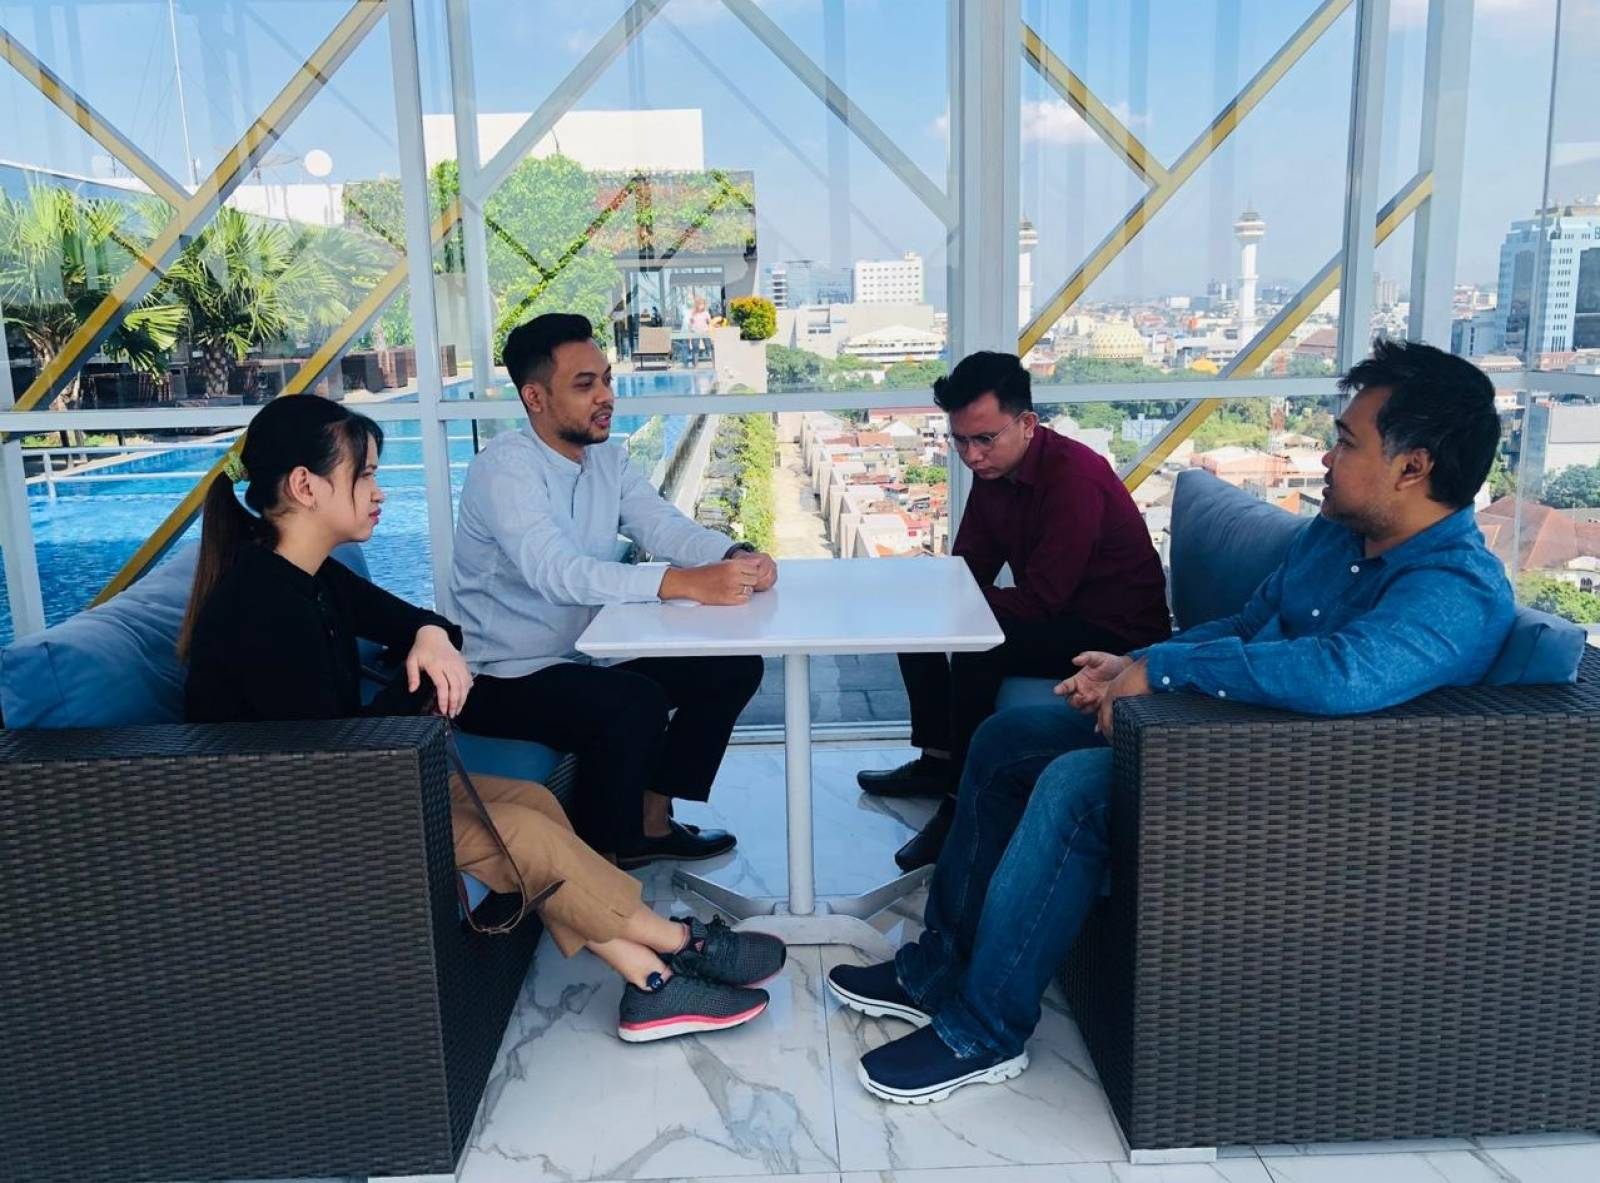 Owner Emporio Architect visit with Emporio Architect Bandung Team 5